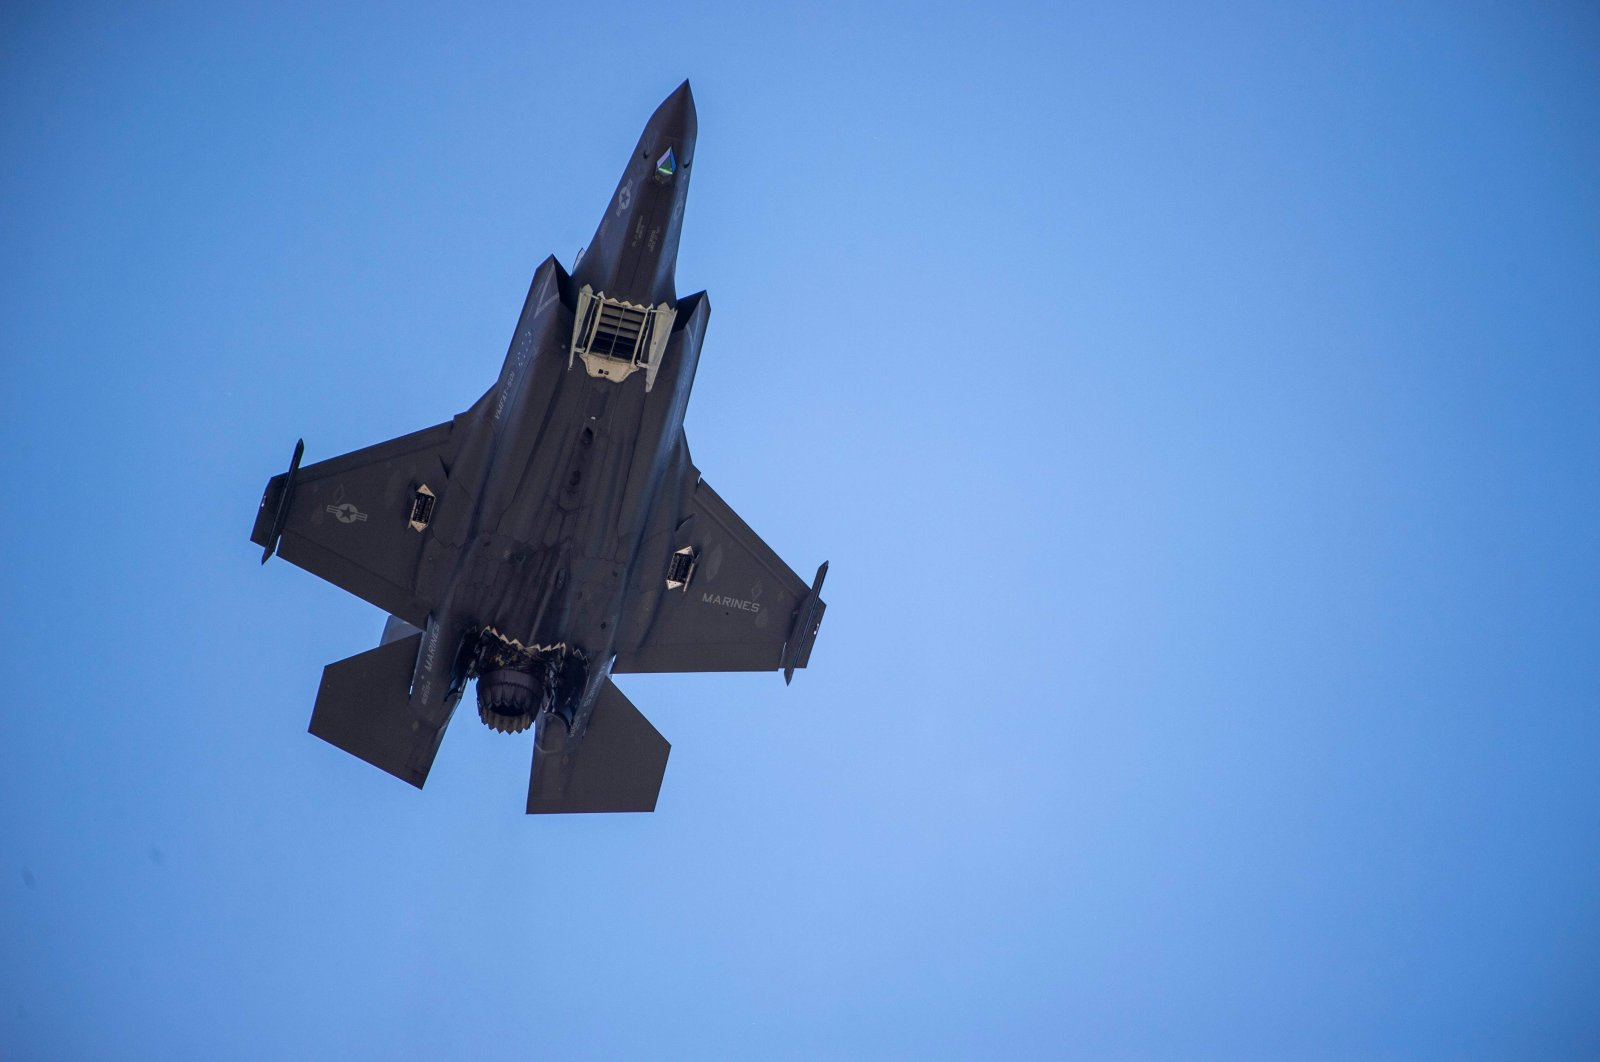 A F-35 fighter plane flies over the White House in Washington, June 12, 2019. (AFP Photo)